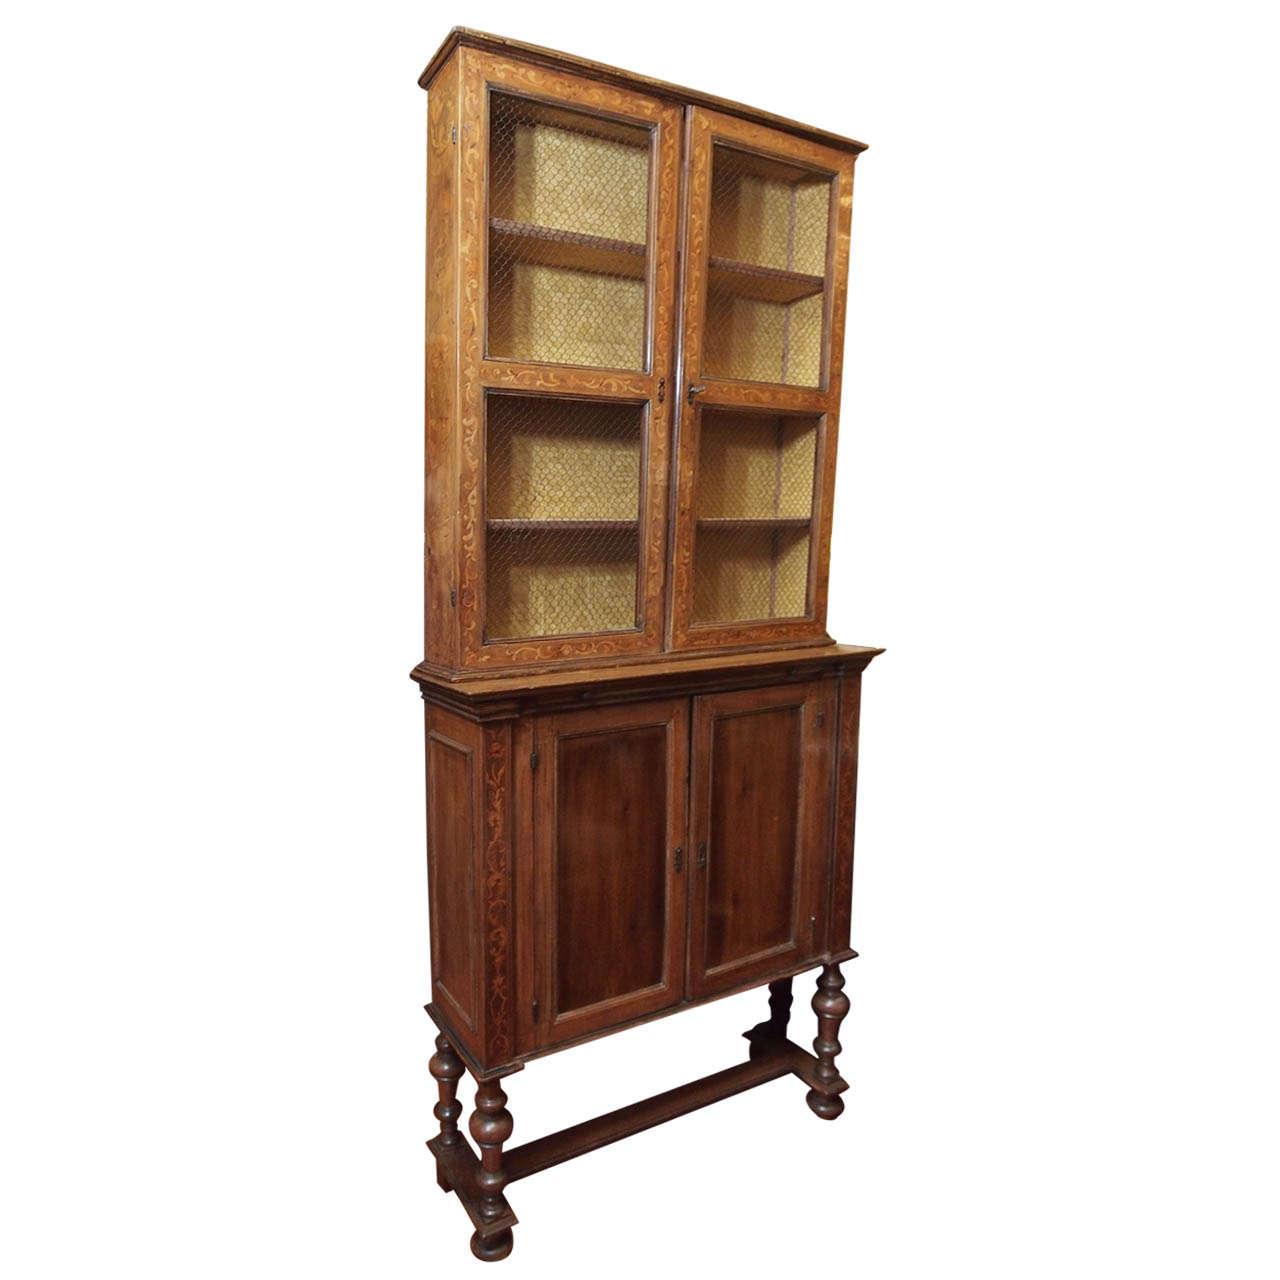 #412116 Italian Marquetry Thin Bookcase At 1stdibs with 1280x1280 px of Recommended Thin Book Shelves 12801280 save image @ avoidforclosure.info